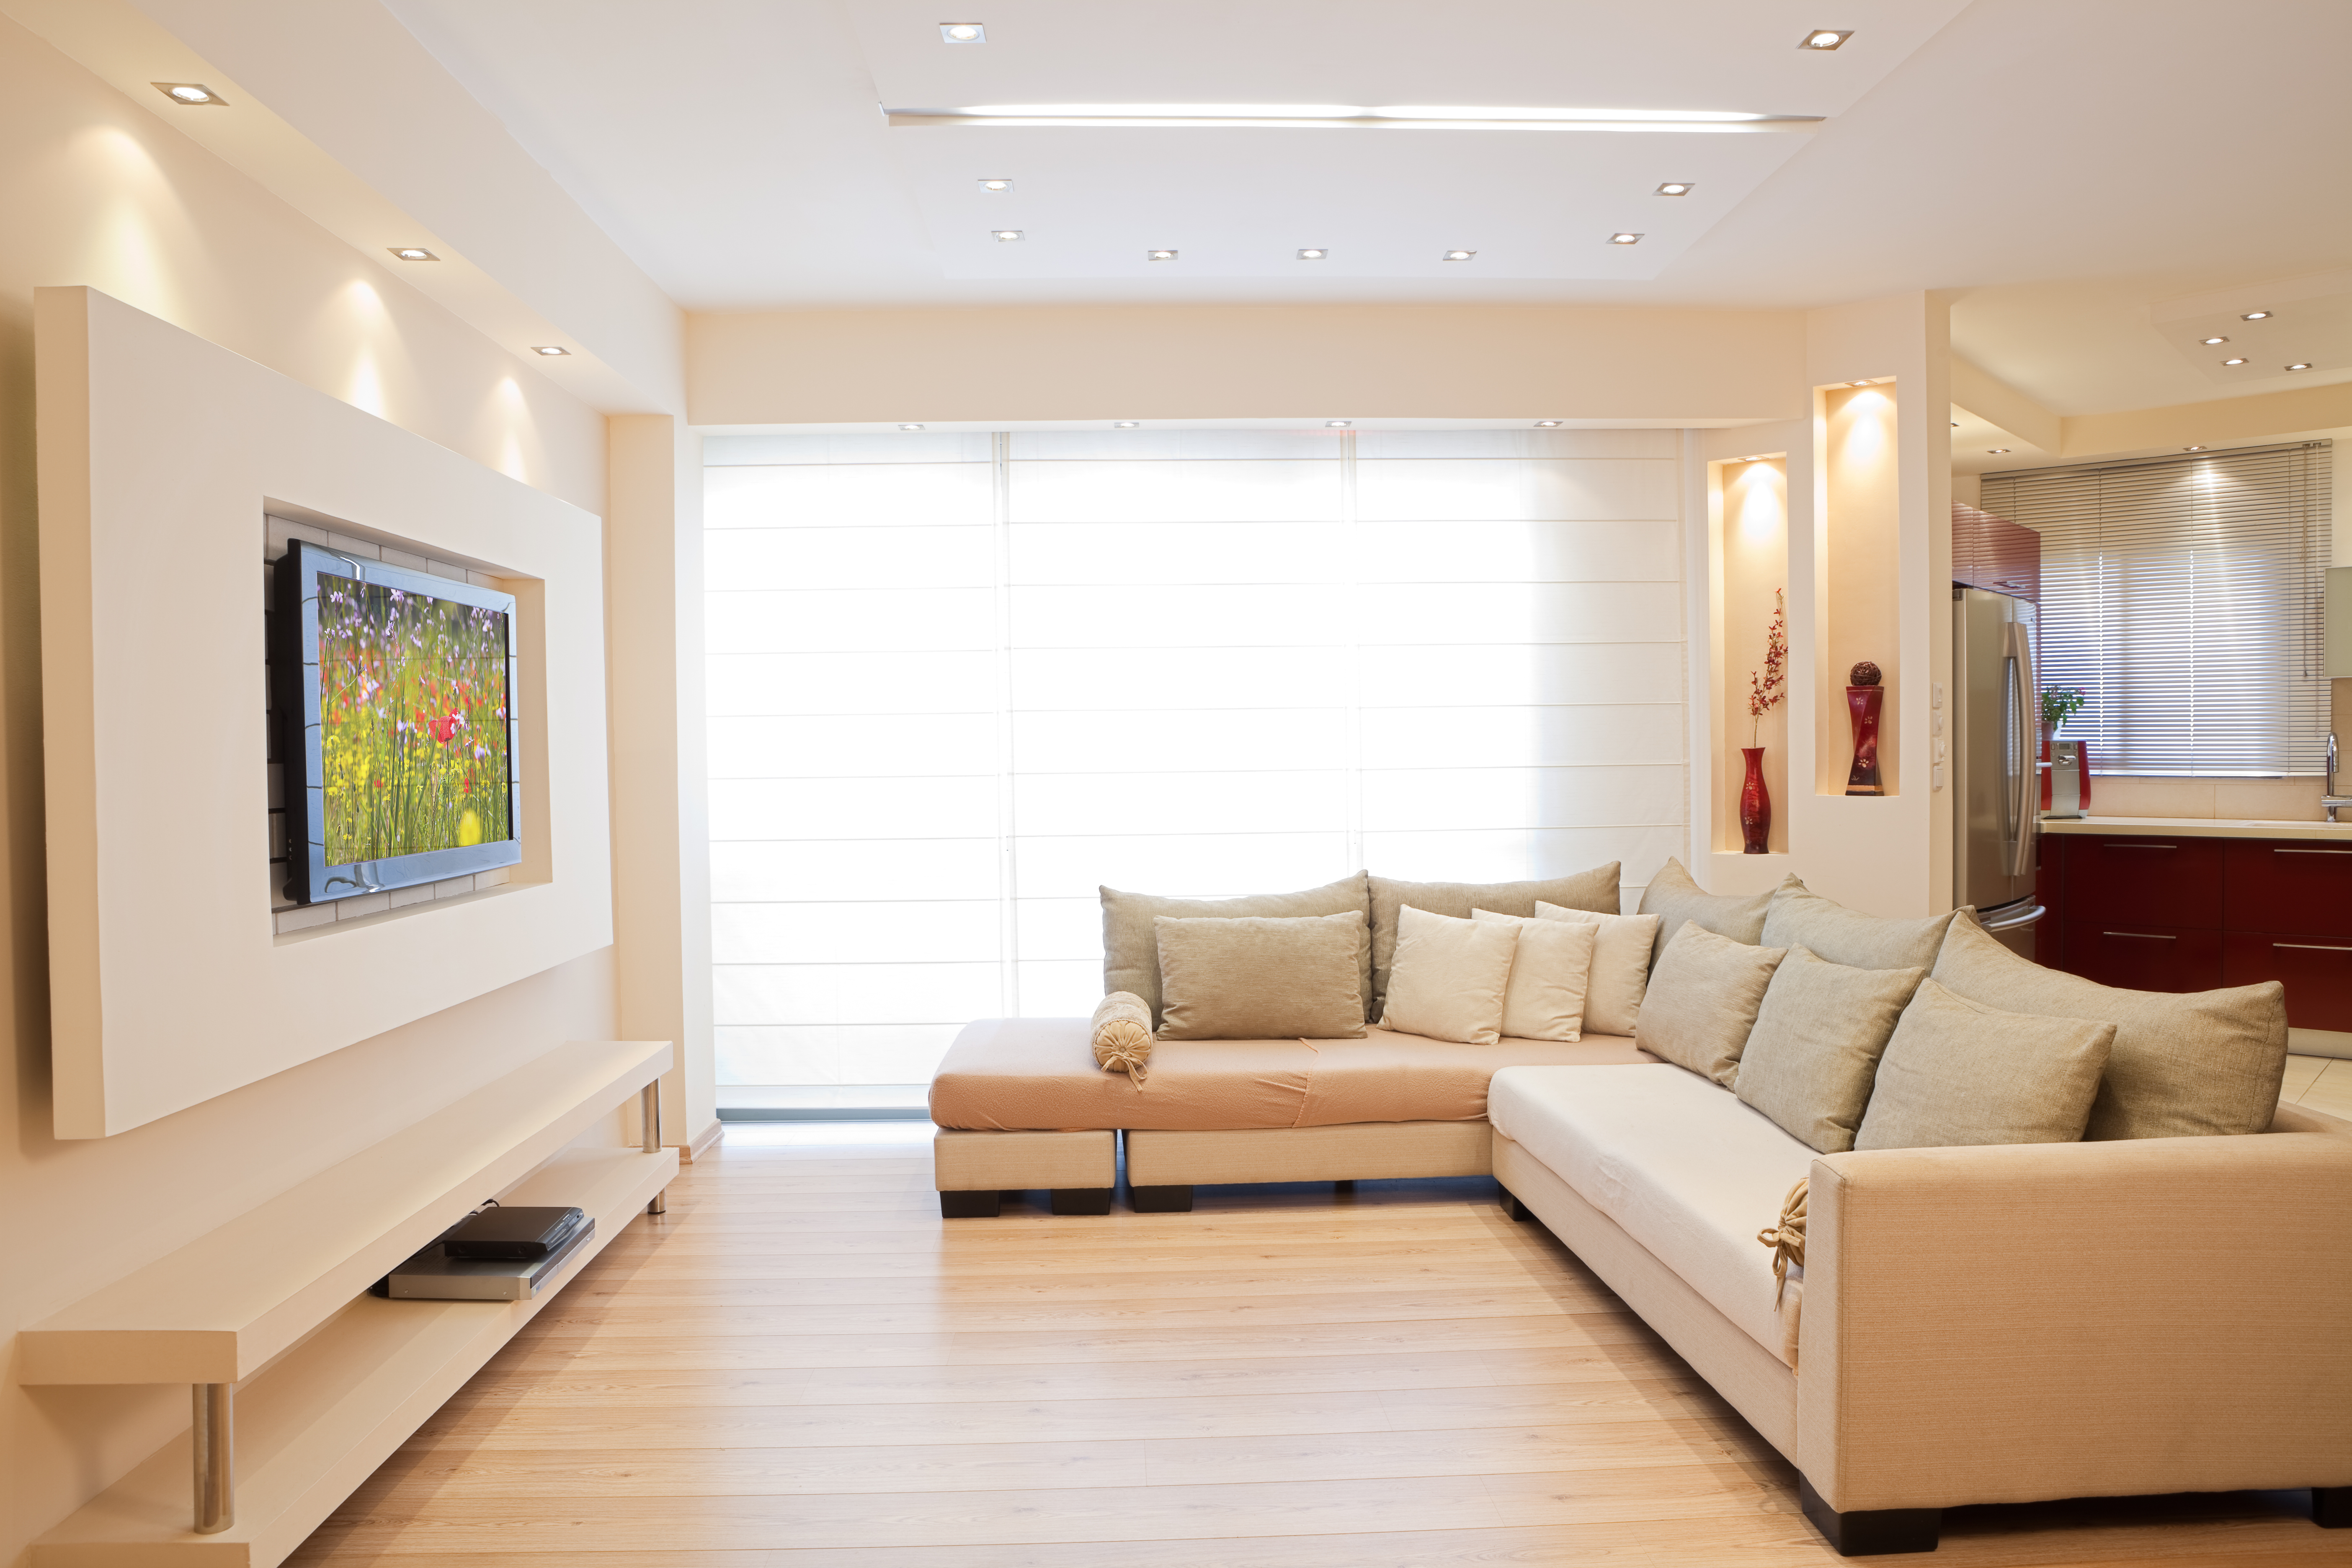 High End Recessed Lighting Ideas For The Modern Home Language Of Light The Intersection Of Lighting Efficiency And Architecture